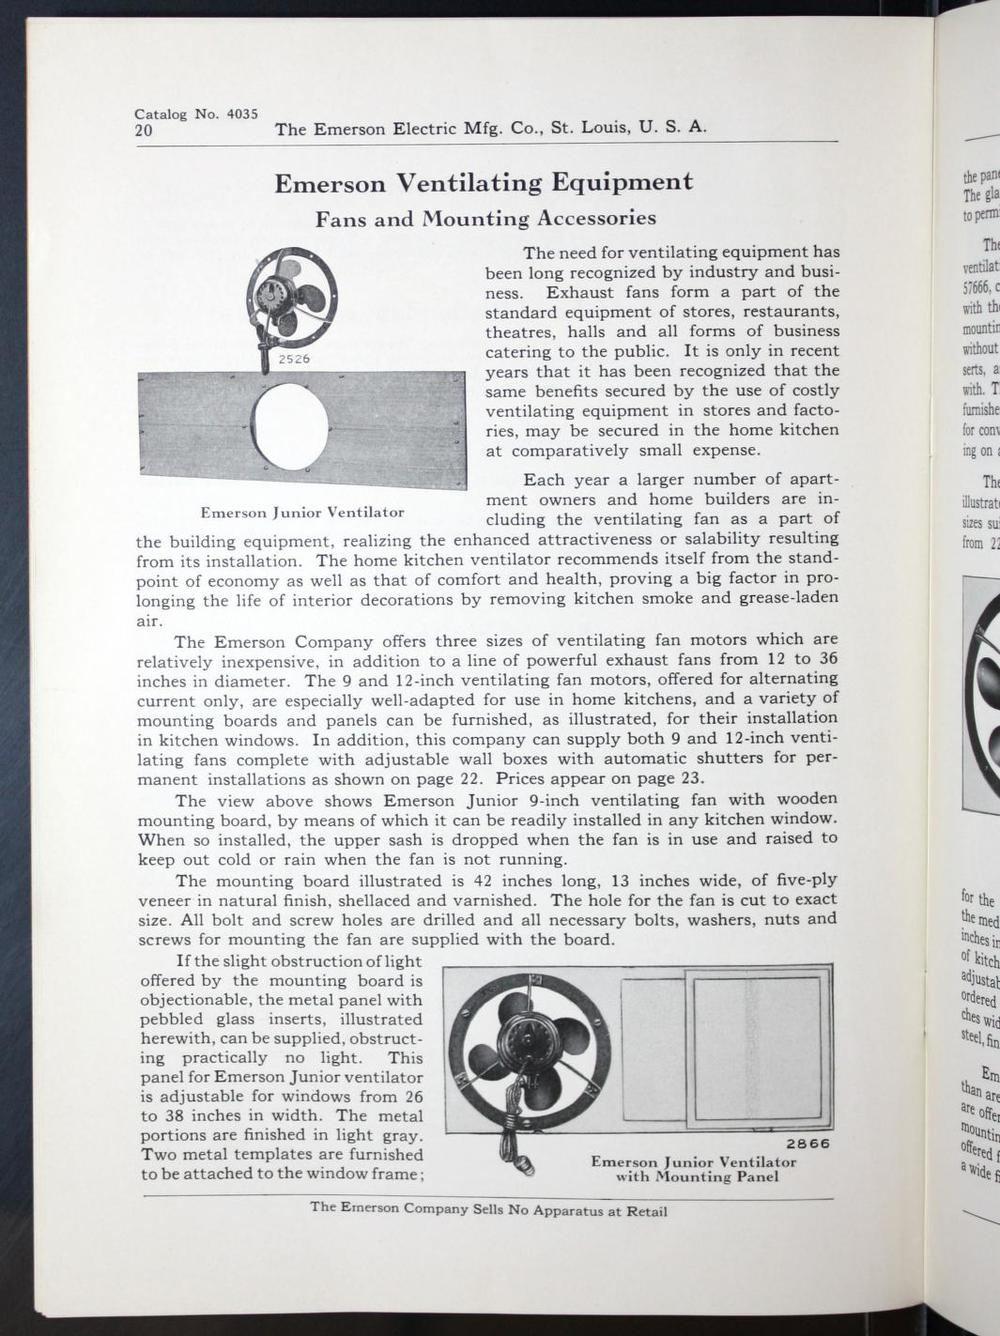 1928 Emerson Jr. Ventilator Catalog Page.jpg